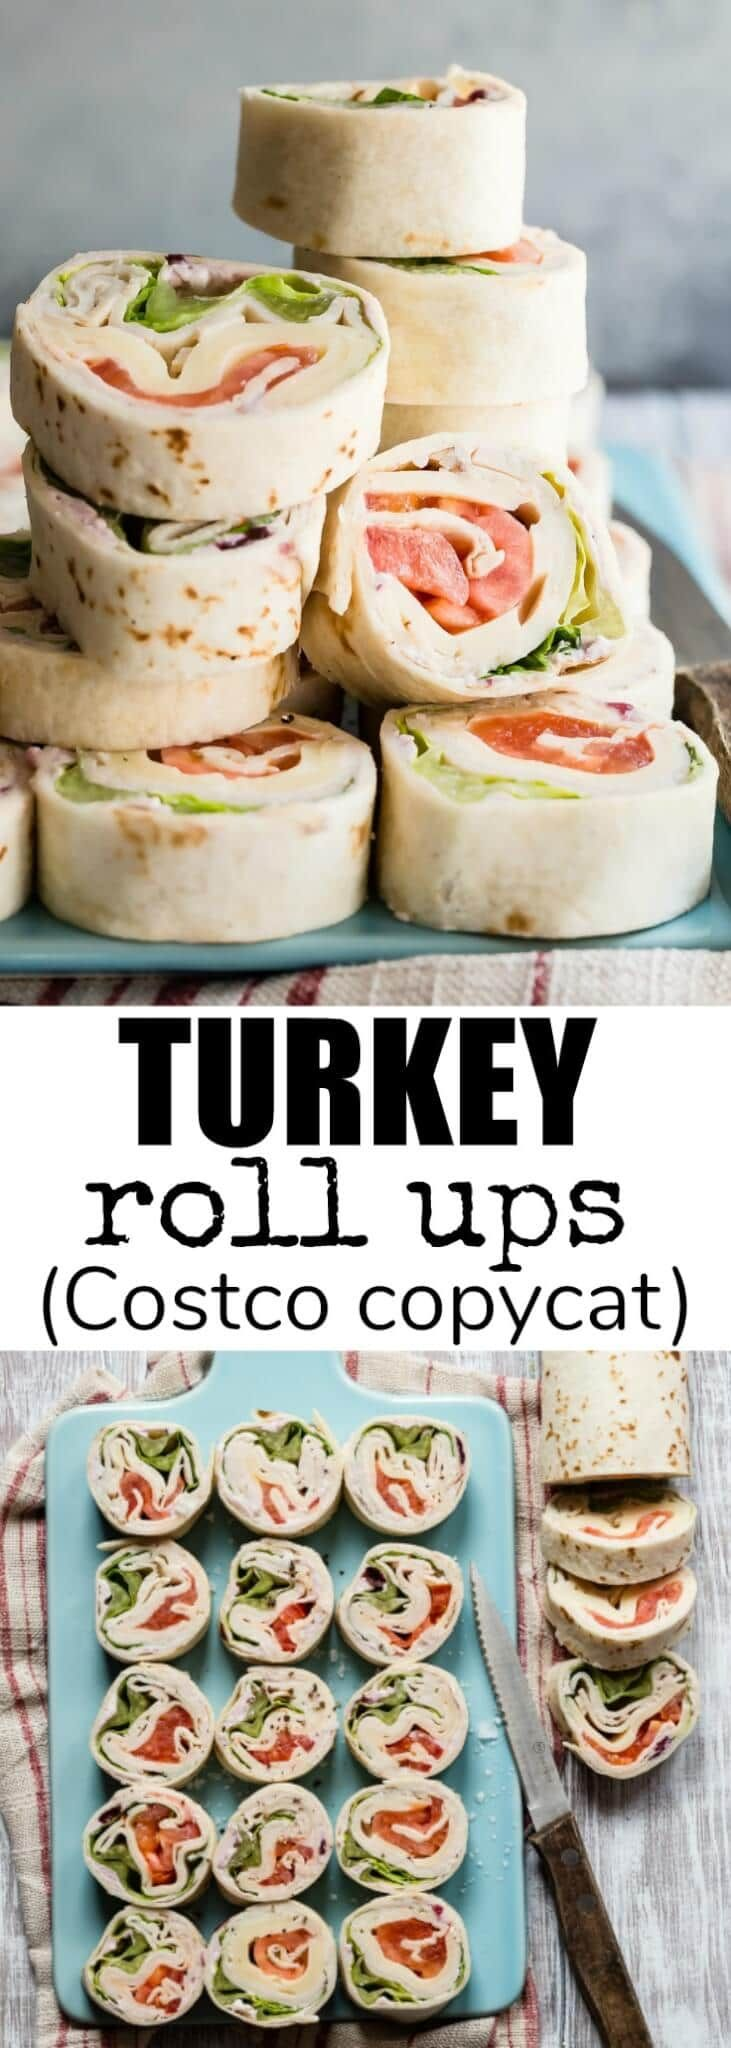 Make your own Turkey Roll Ups at home, just like the ones at Costco. They are so easy to make, cheaper, AND tastier than the store-bought version!